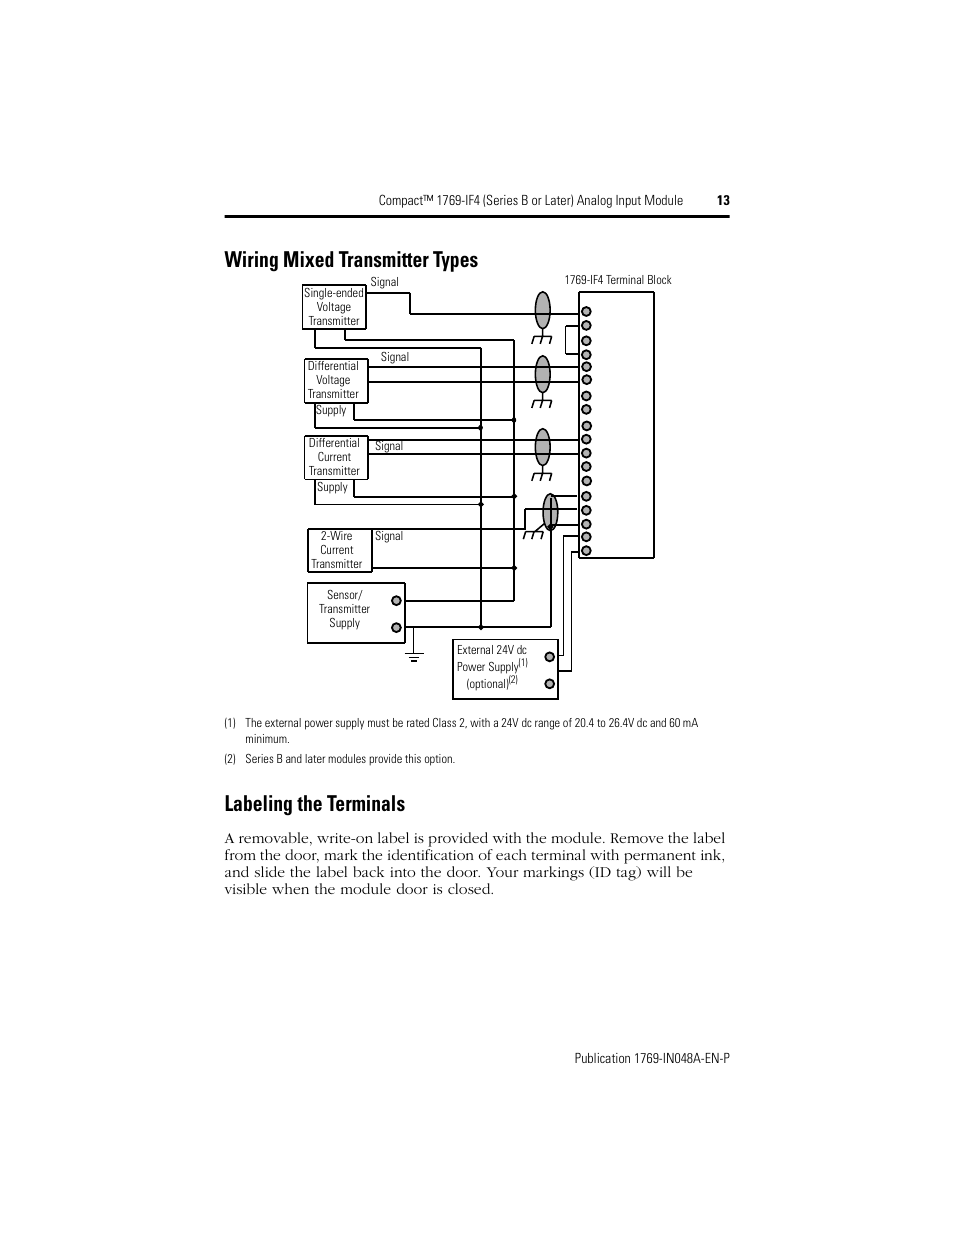 hight resolution of wiring mixed transmitter types labeling the terminals rockwell automation 1769 if4 compact series b or later analog input module user manual page 13